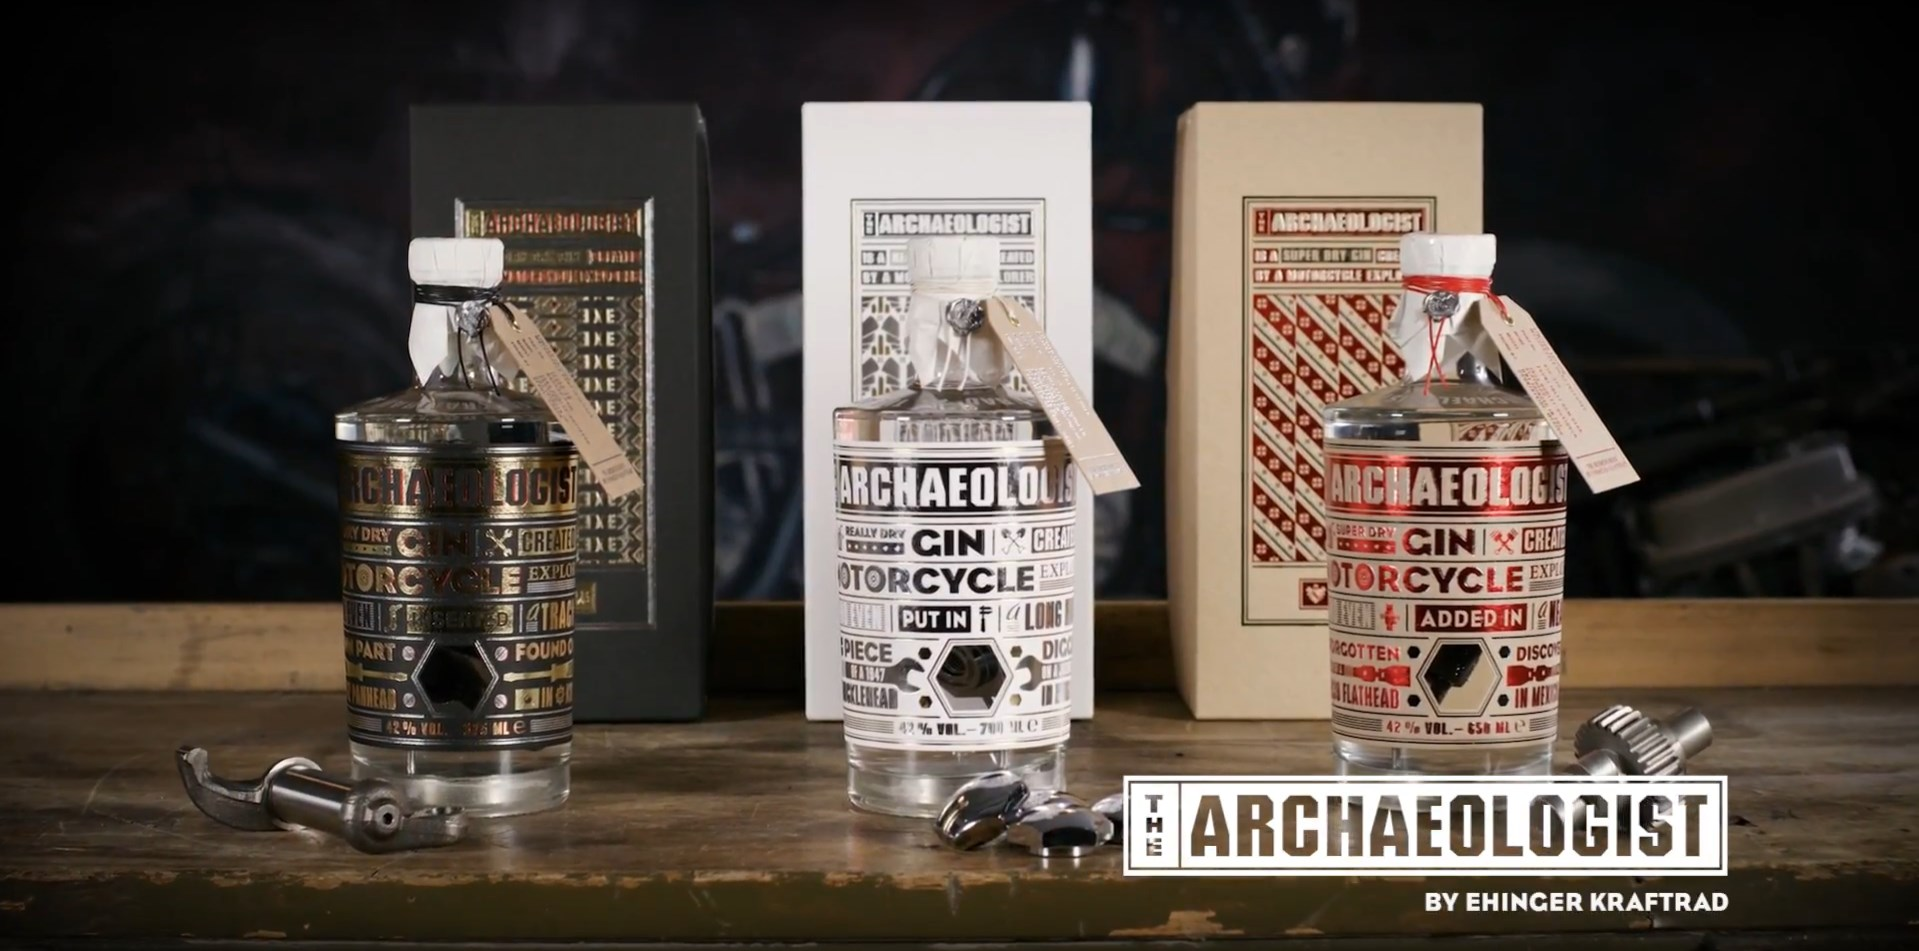 You can now drink Harley-Davidson bike parts in a bottle of gin!